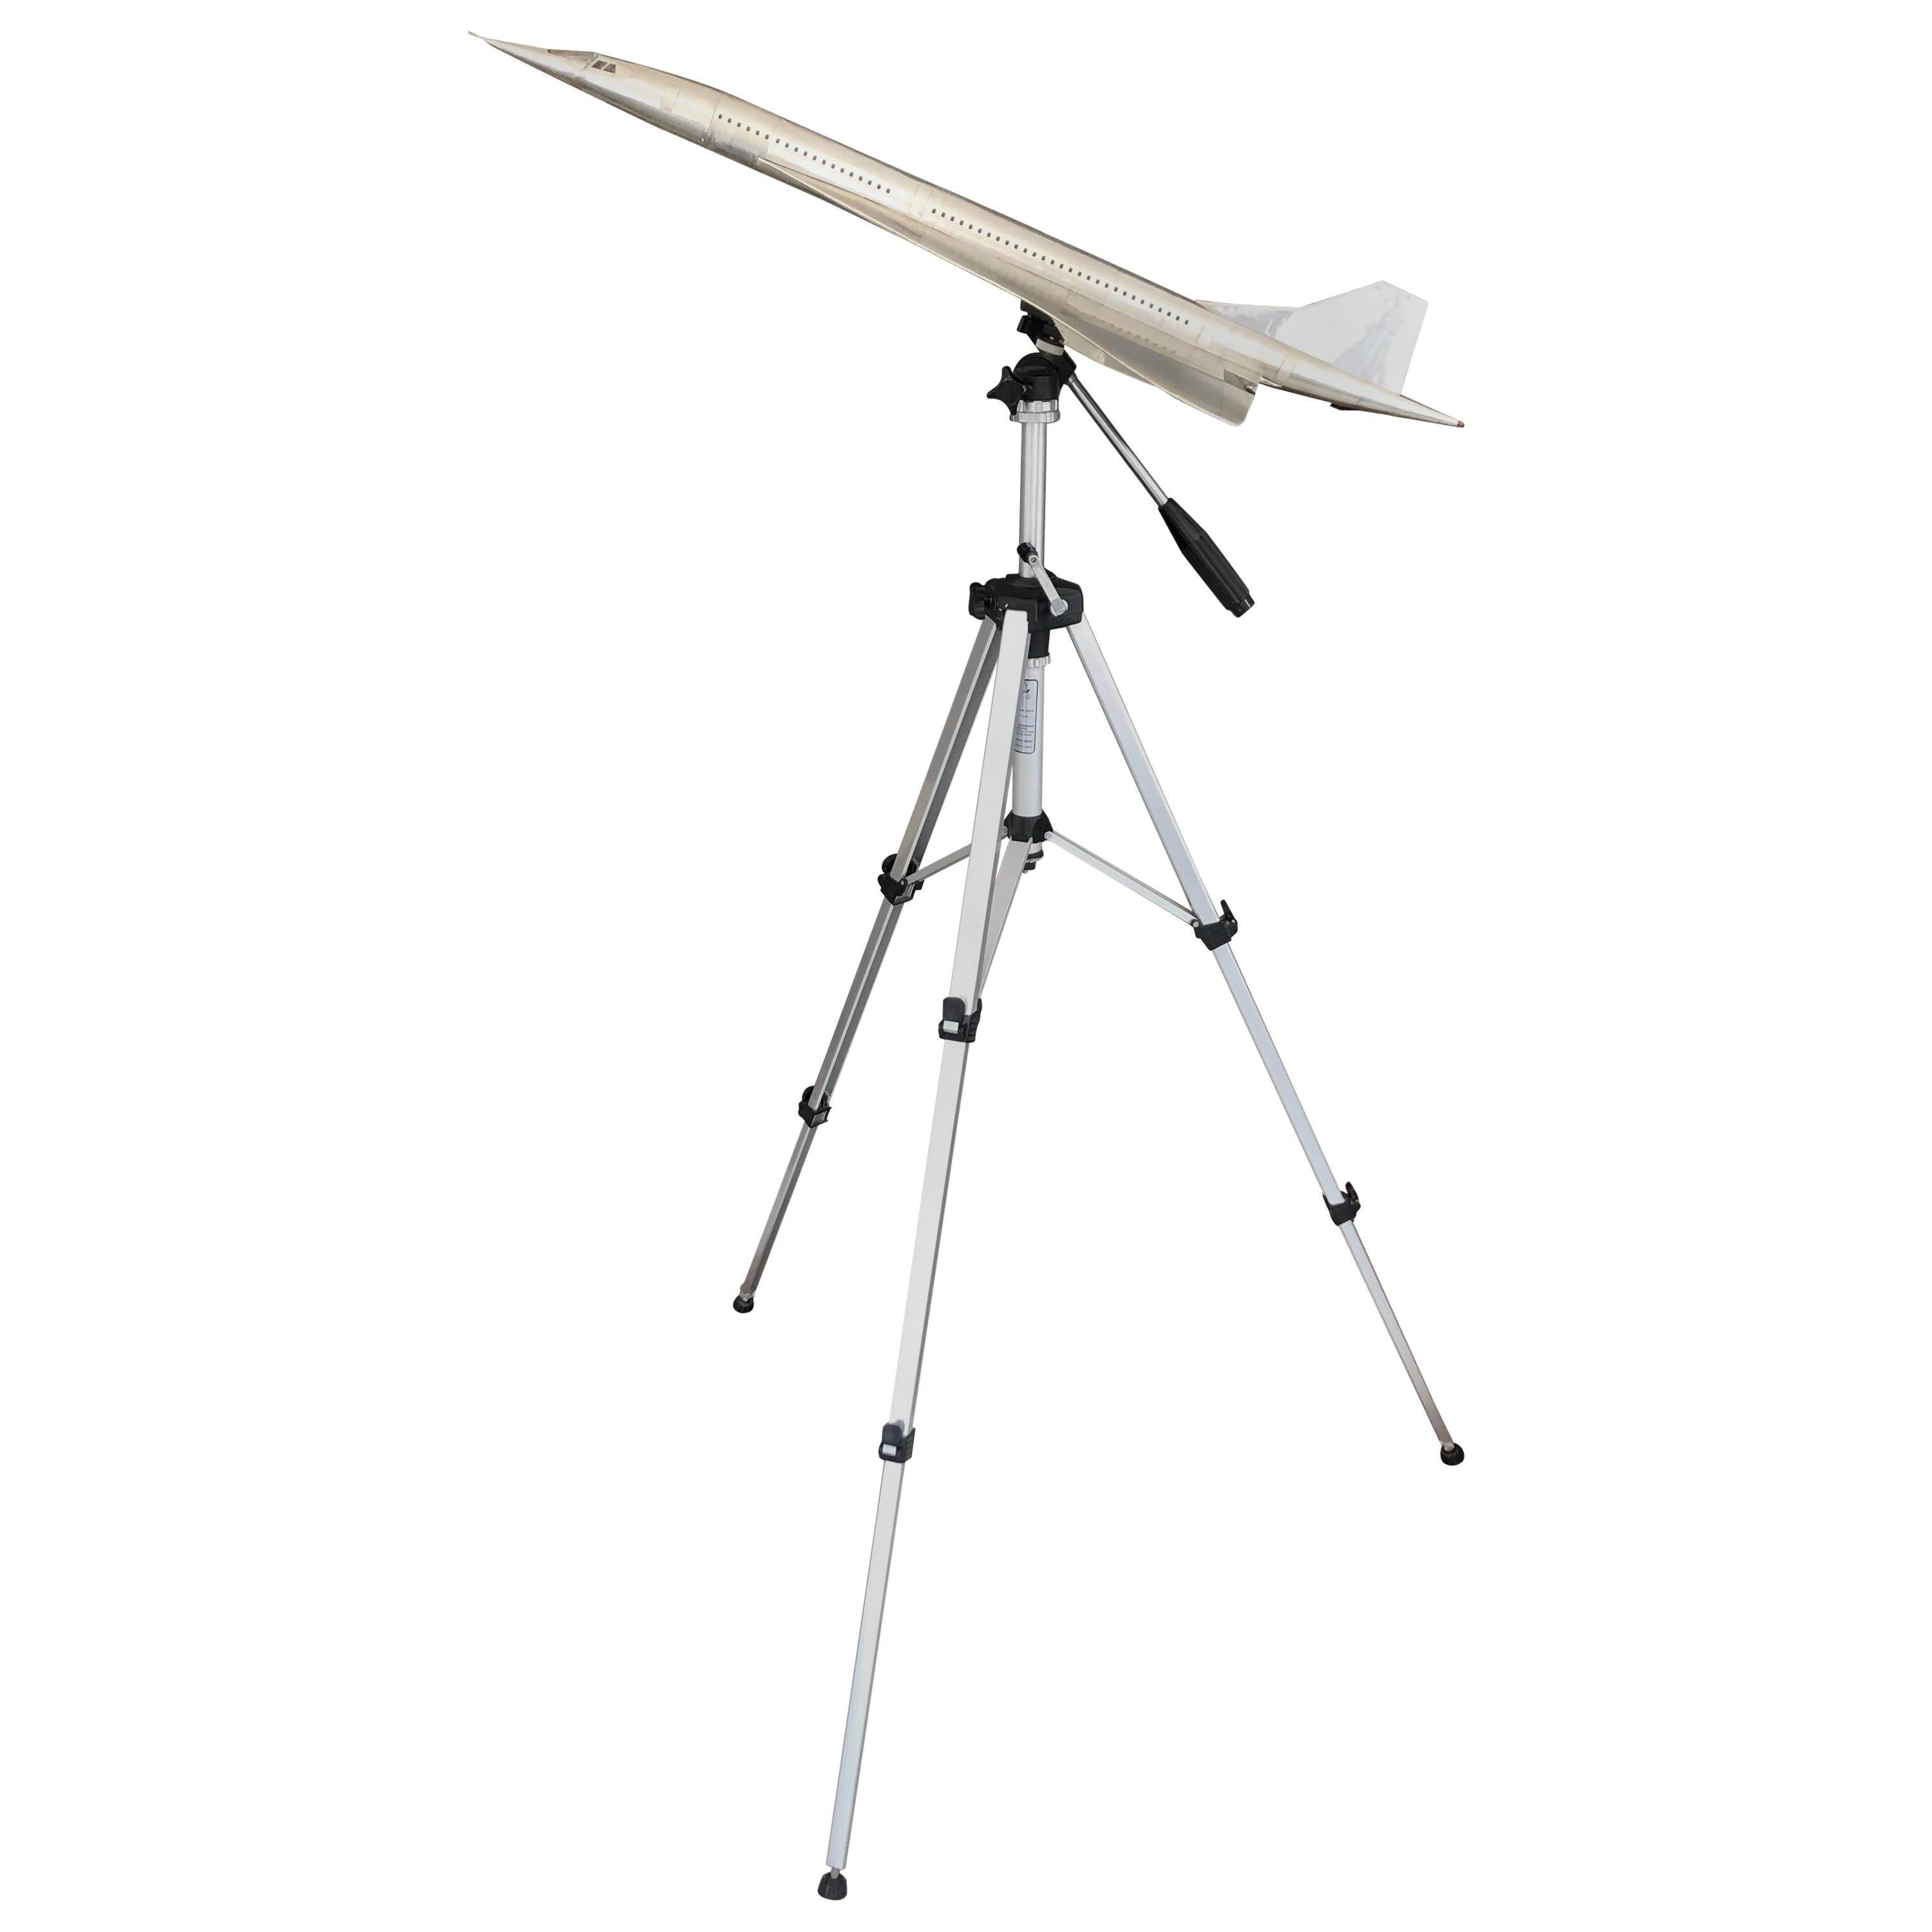 Concord Airplane Scale Model with Adjustable Tripod